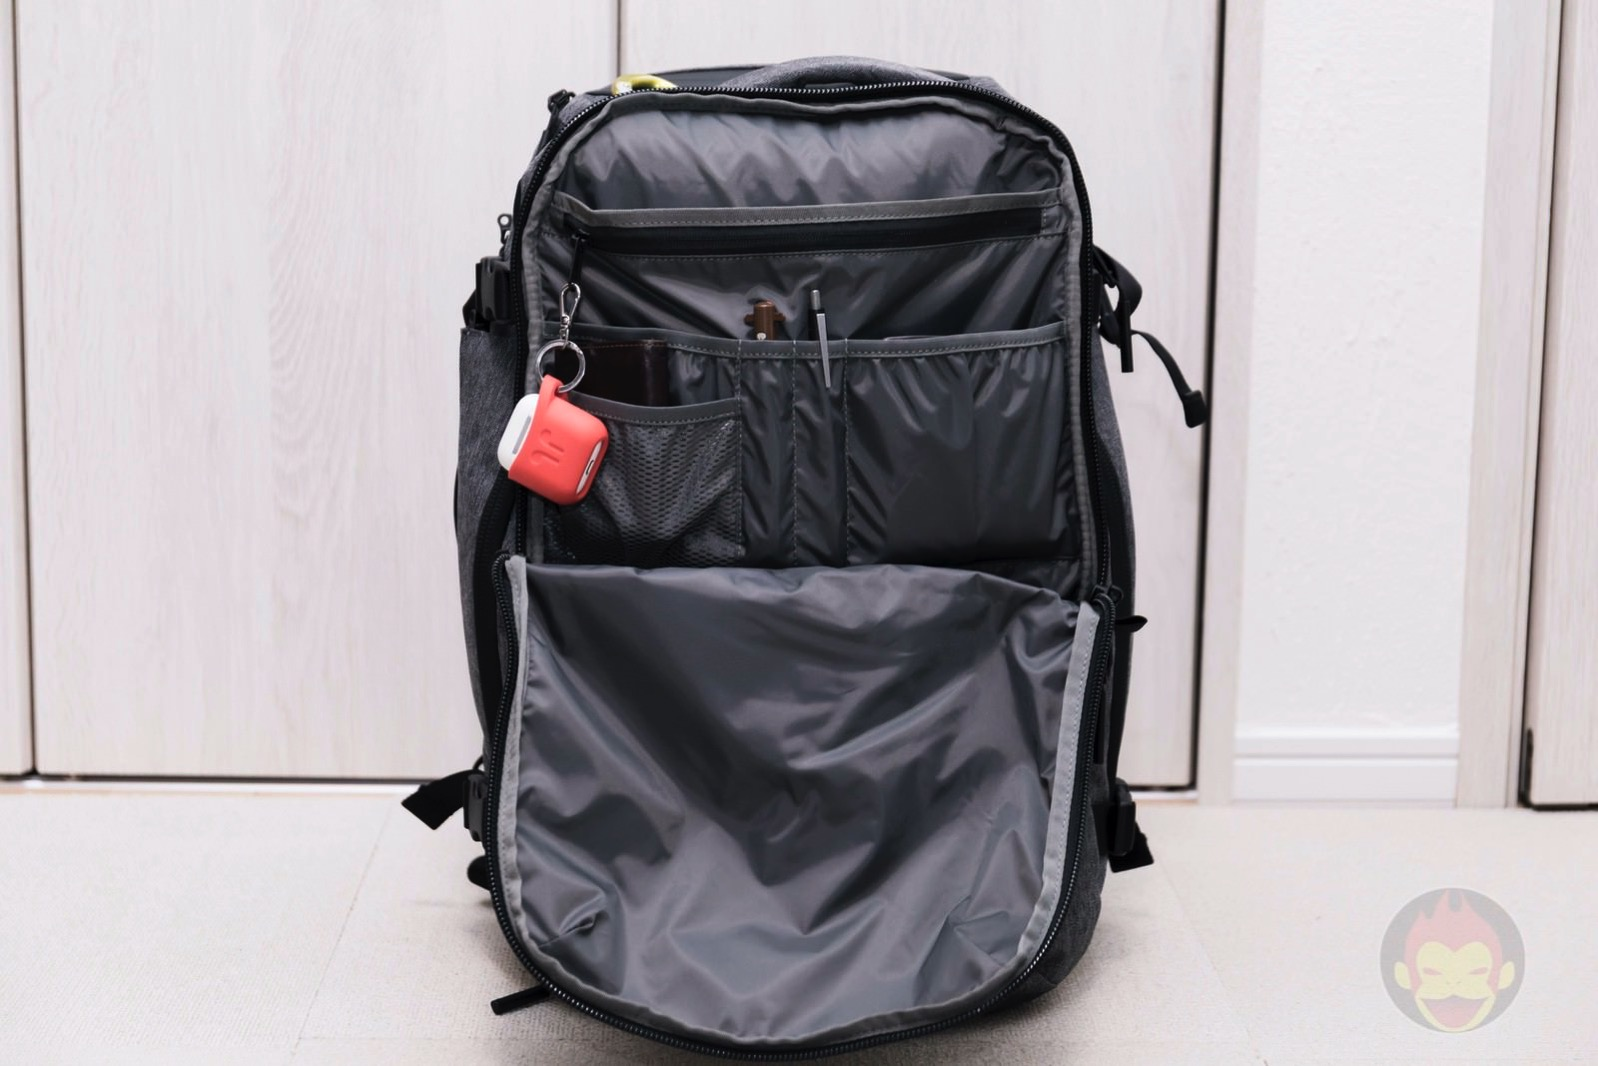 Aer Travel Pack 2 Backpack Review 21